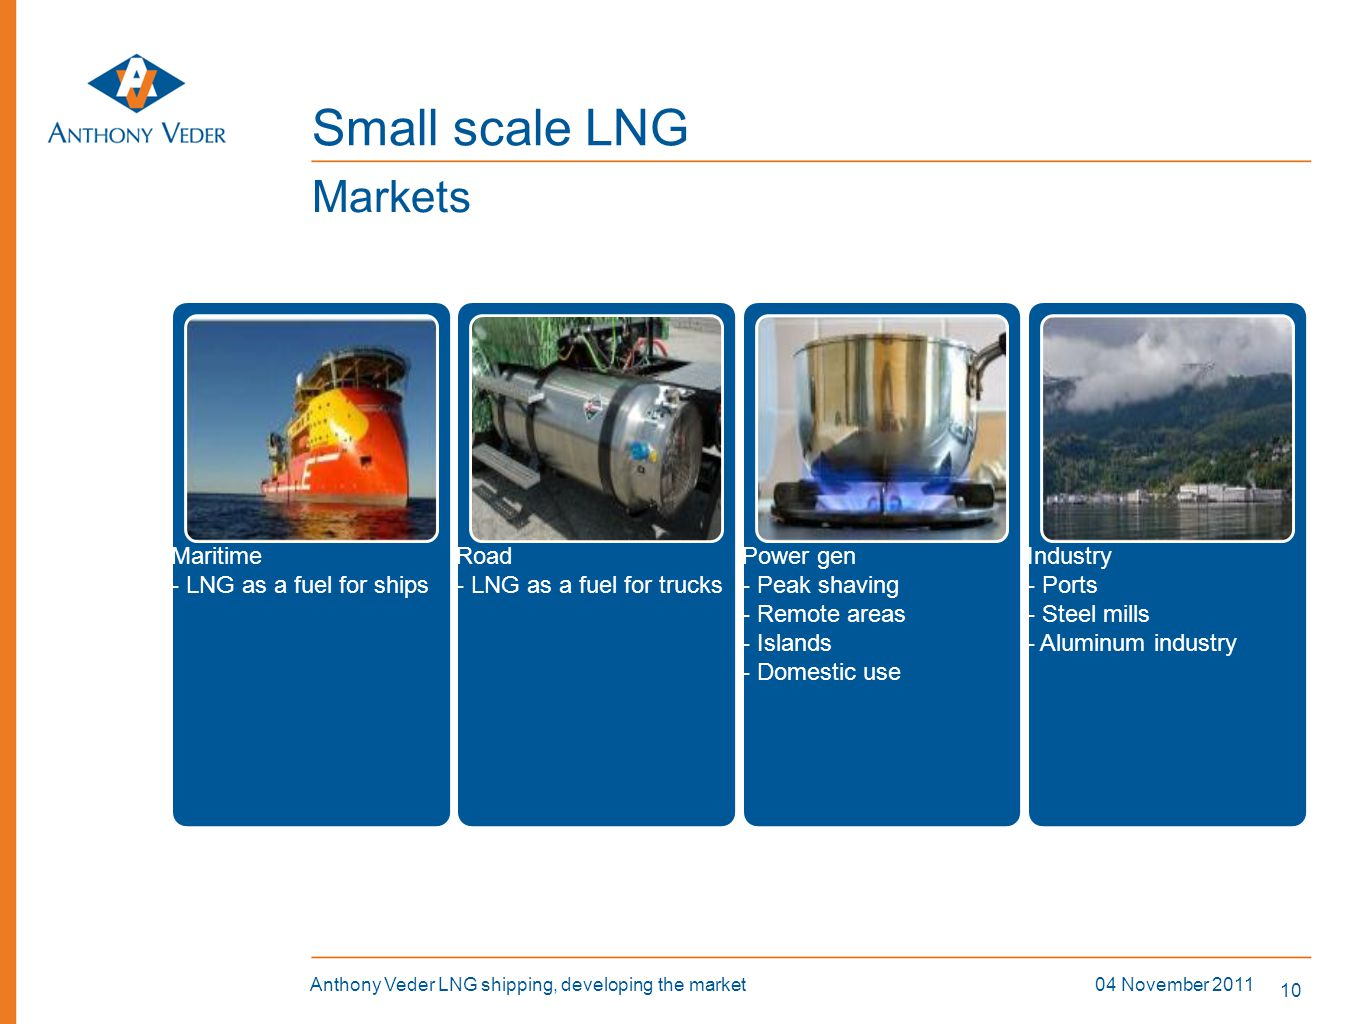 Small scale LNG Markets Maritime - LNG as a fuel for ships Road